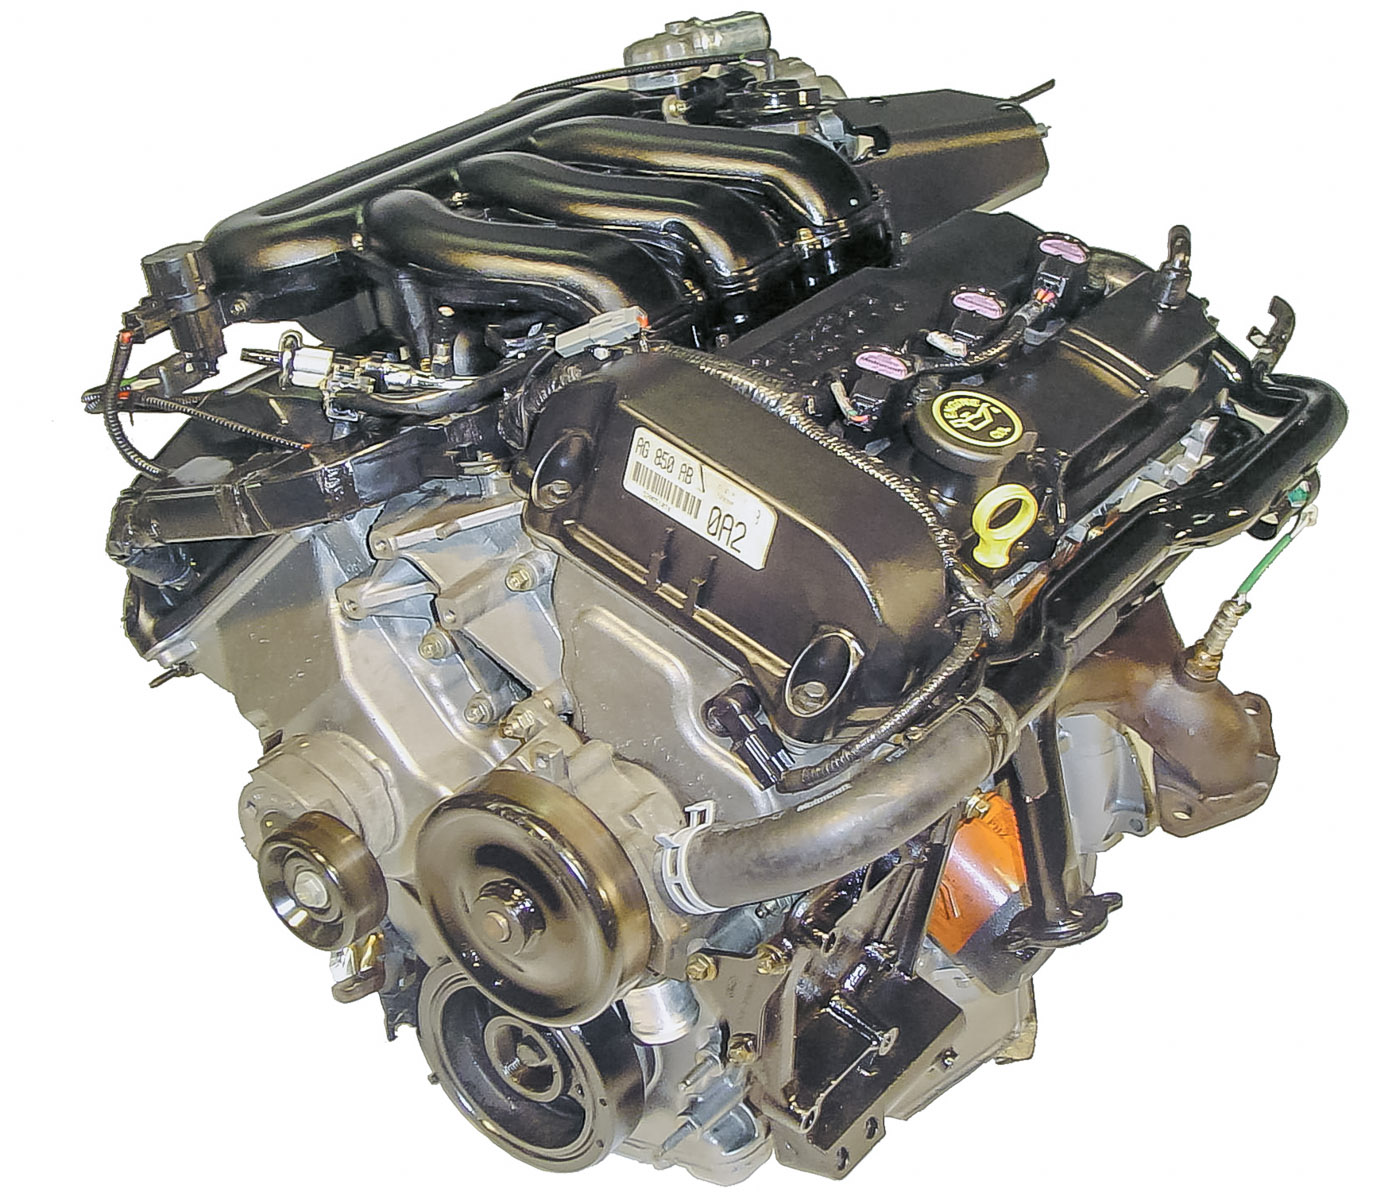 2001-2005 Ford Taurus 3.0L V6 DOHC Used Engine | Engine World